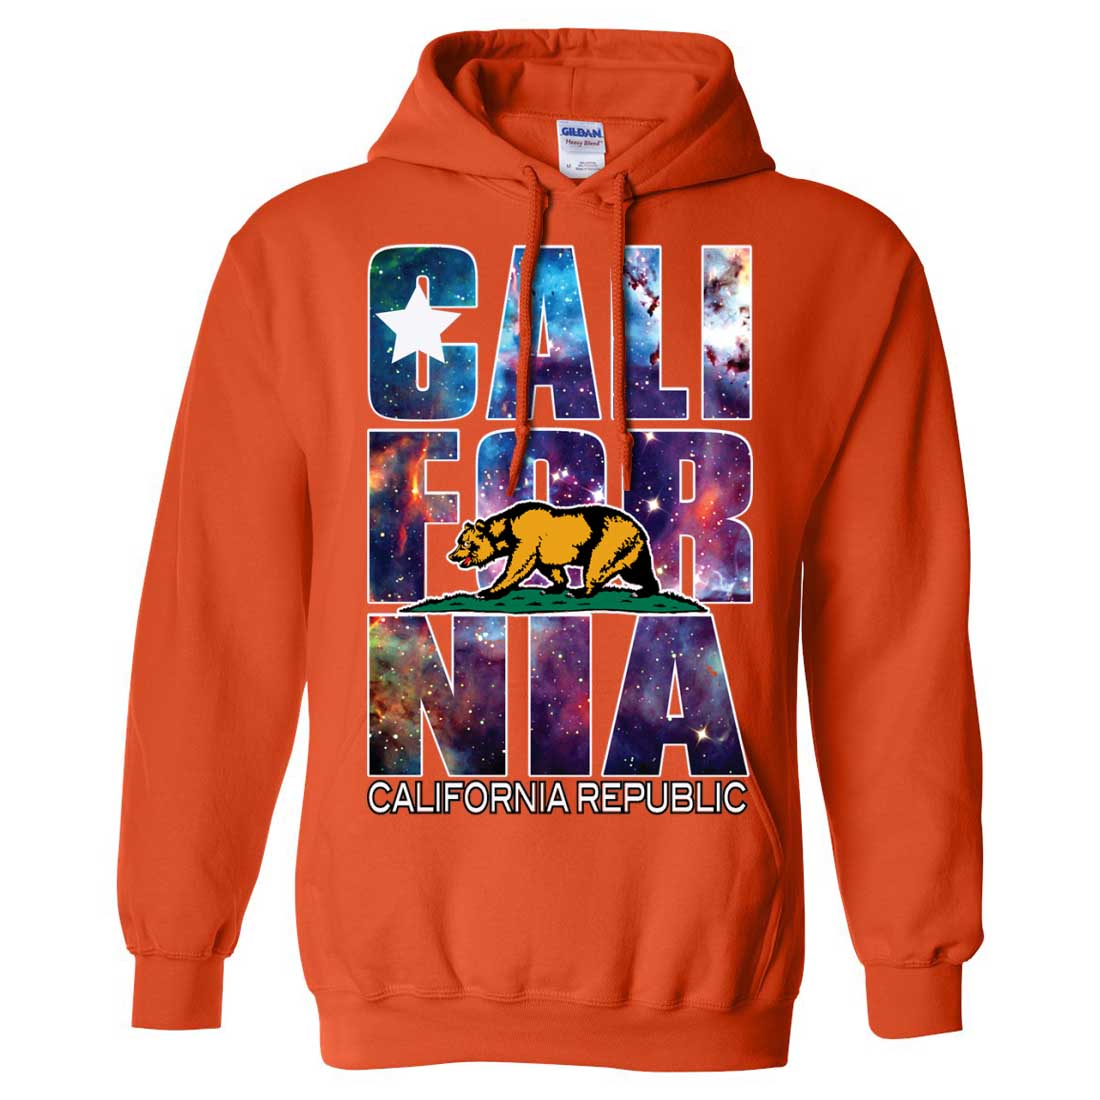 California republic cosmic state flag logo design space for Cosmic pattern clothing